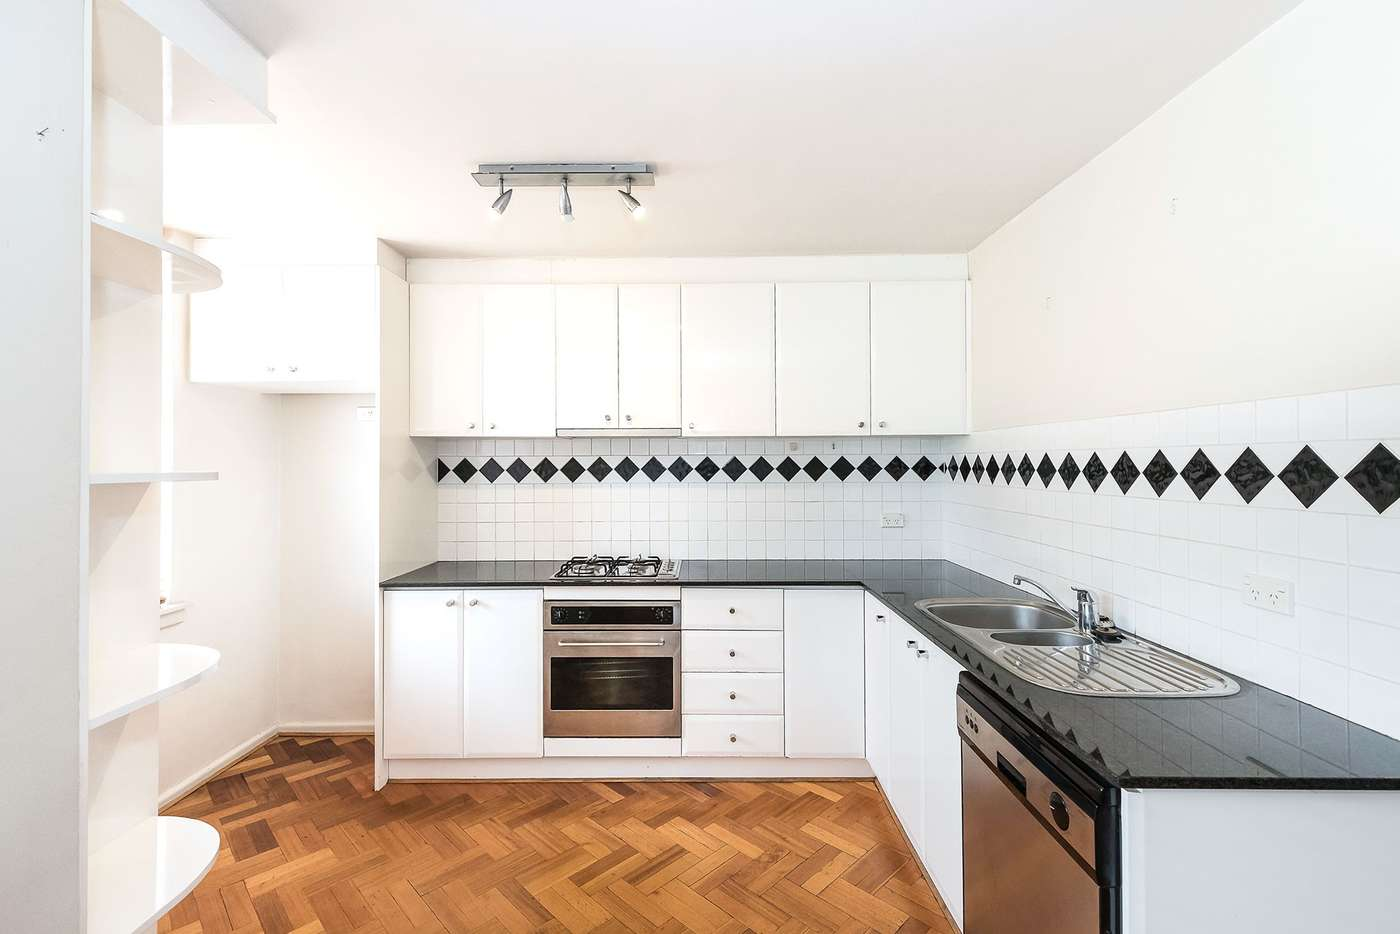 Main view of Homely apartment listing, 6/81 Alma Road, St Kilda VIC 3182